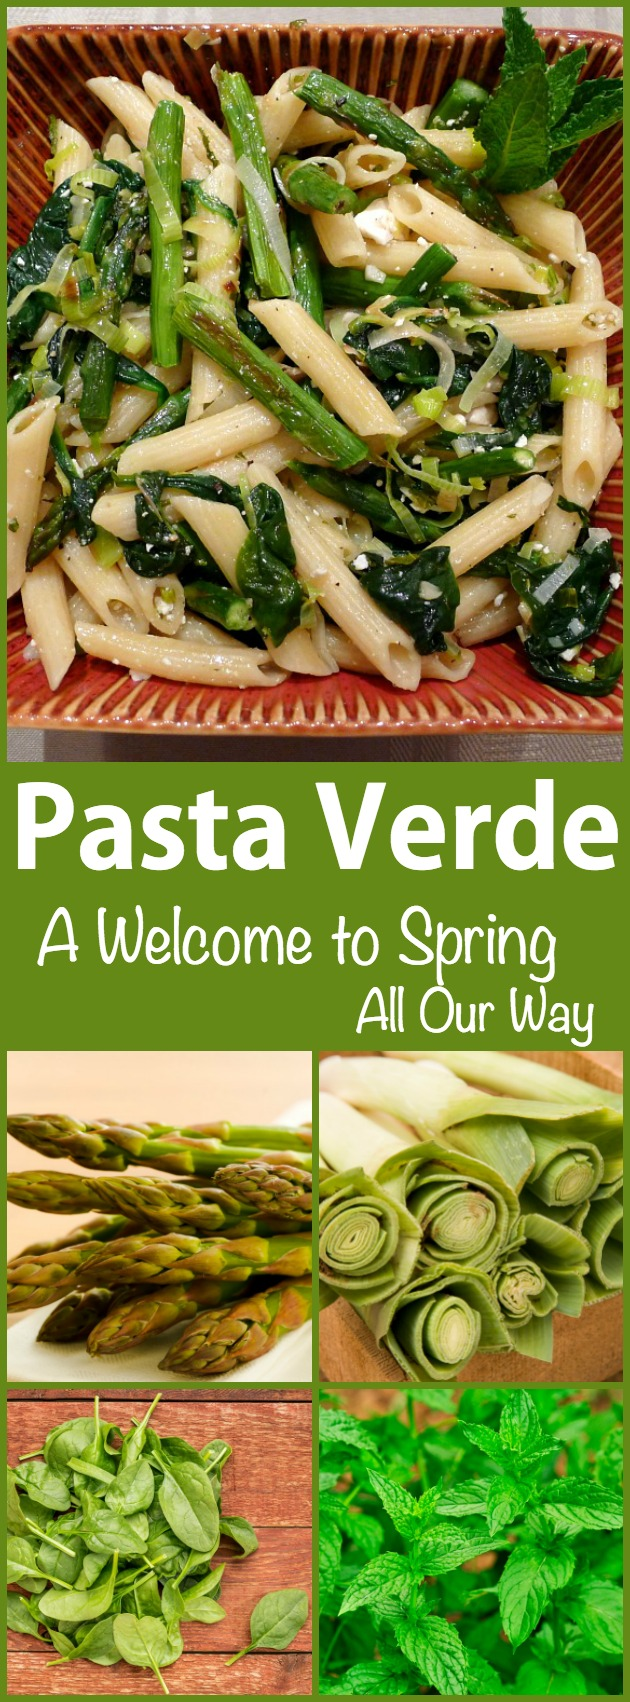 Pasta Verde or Green Pasta is loaded with springtime vegetables. Great on taste and low in calories.